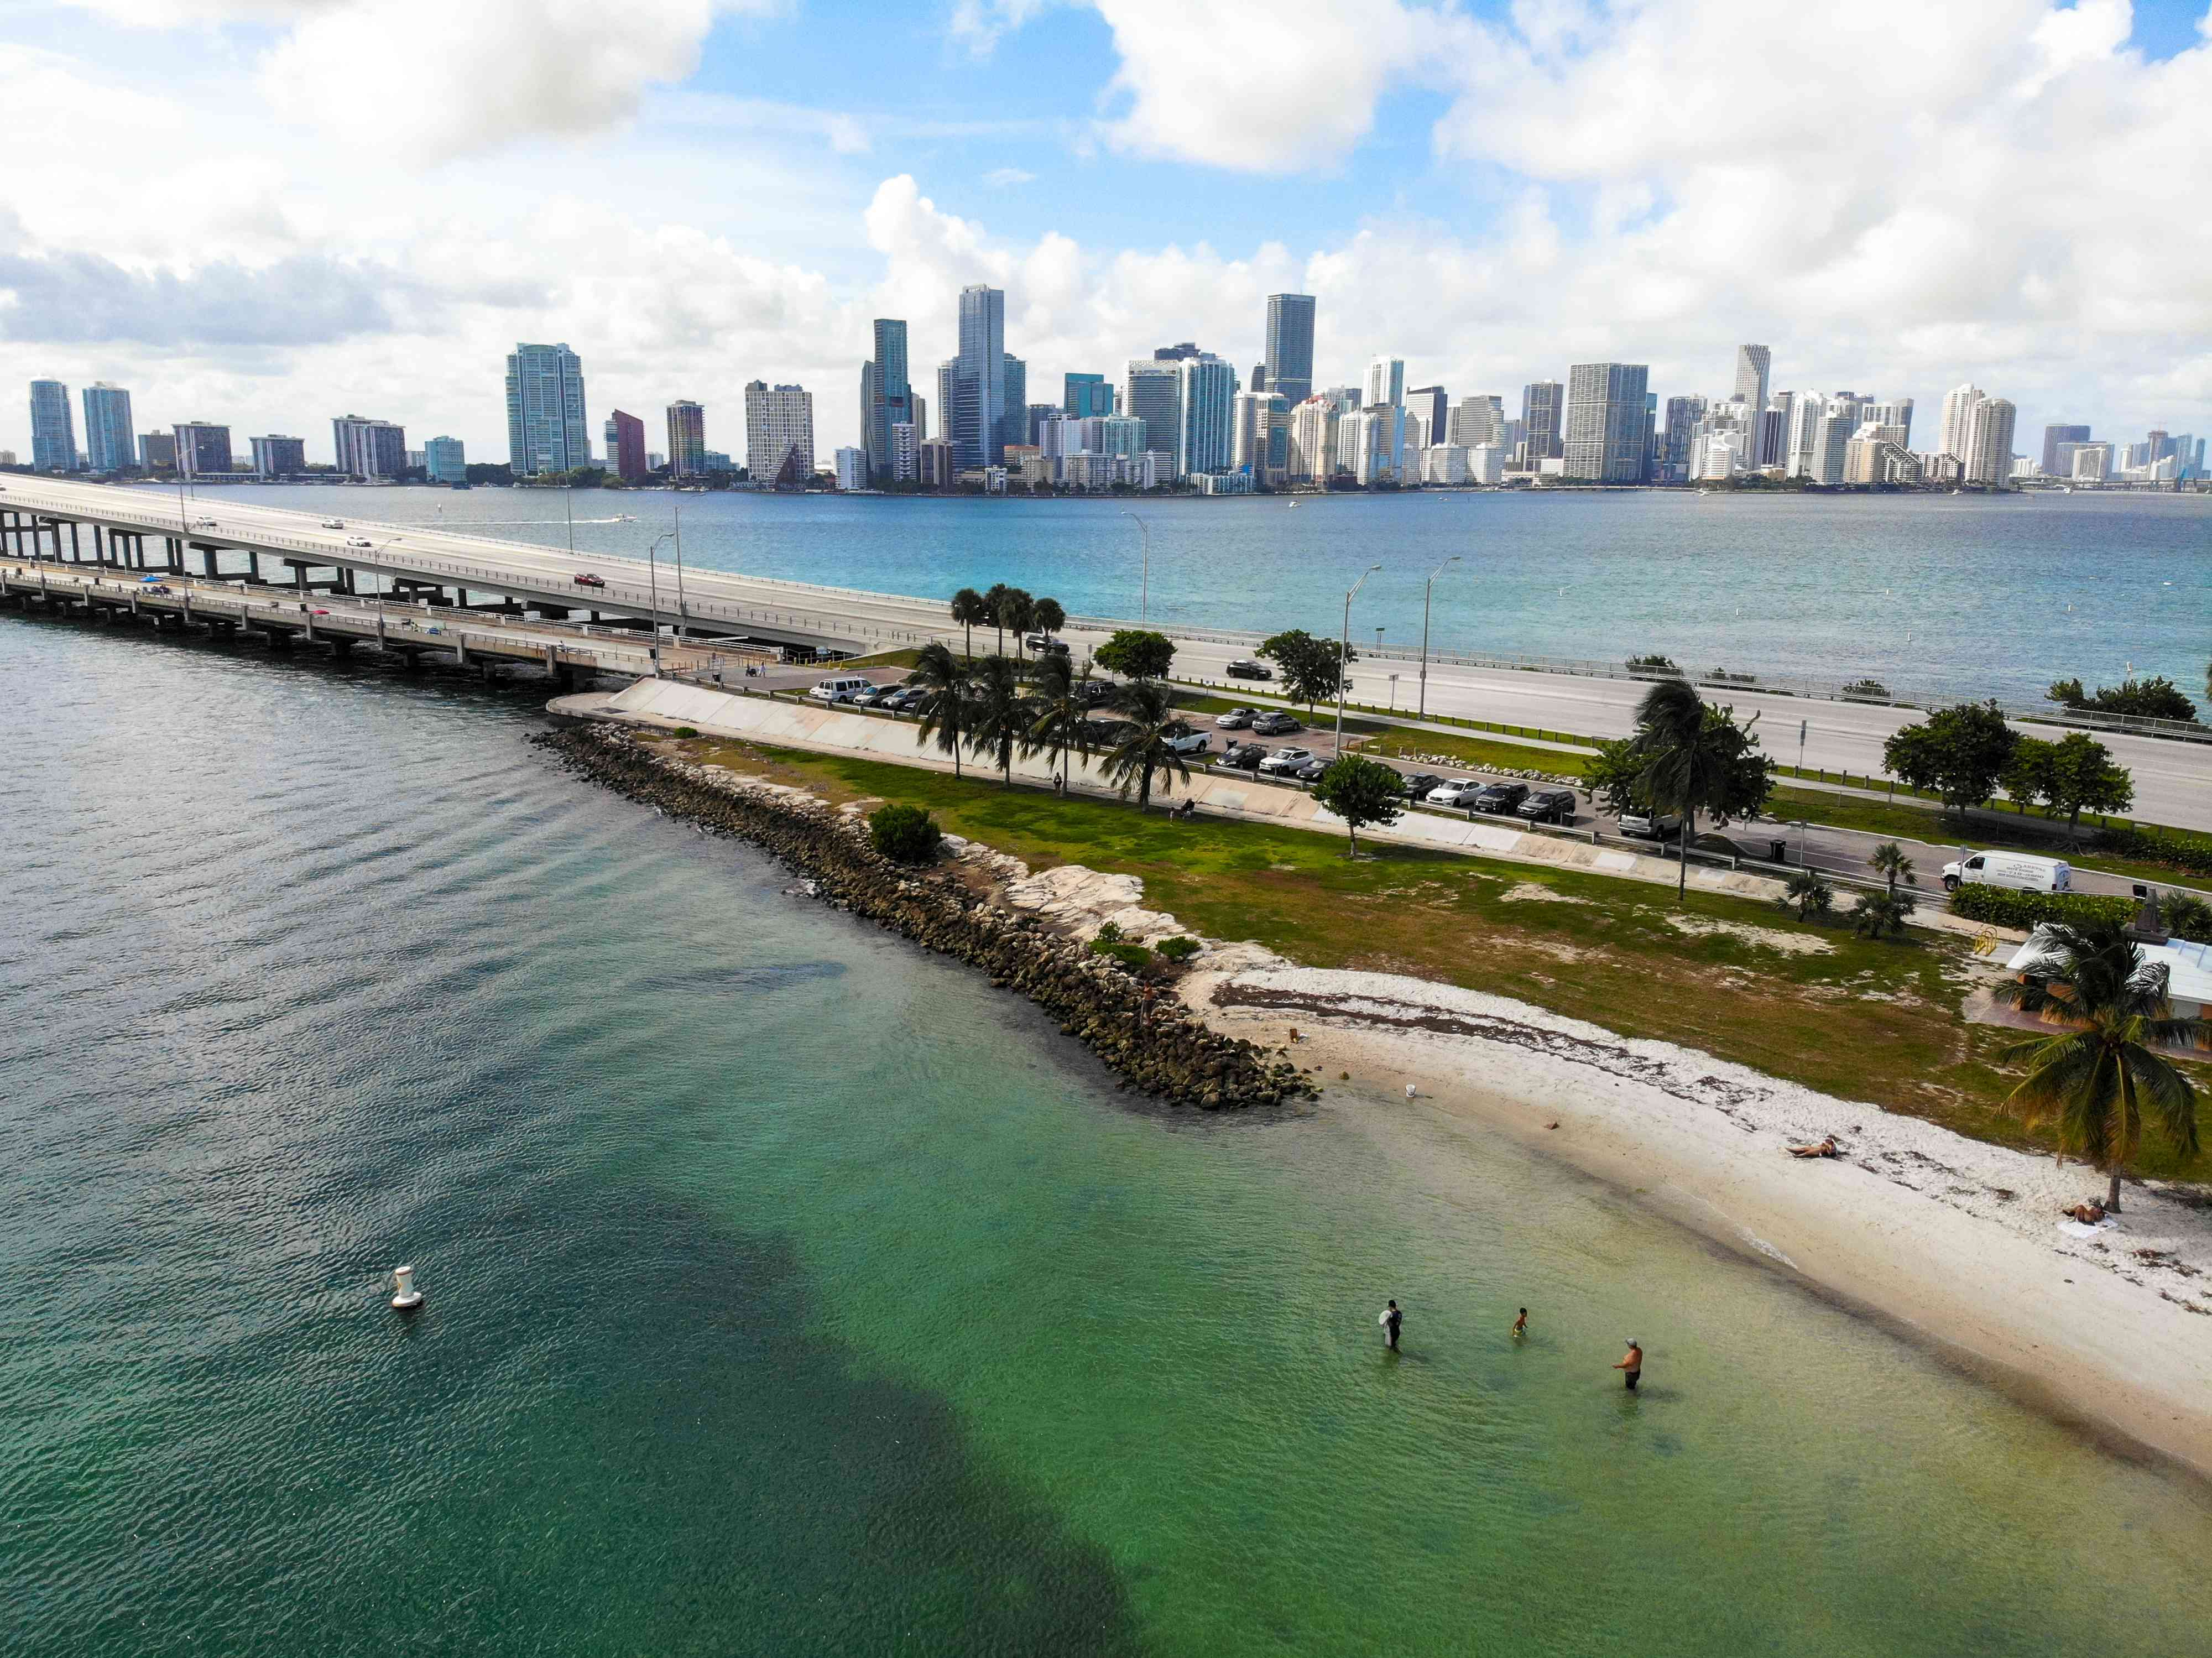 Aerial shot of Hobie beach with miami skyline in the background